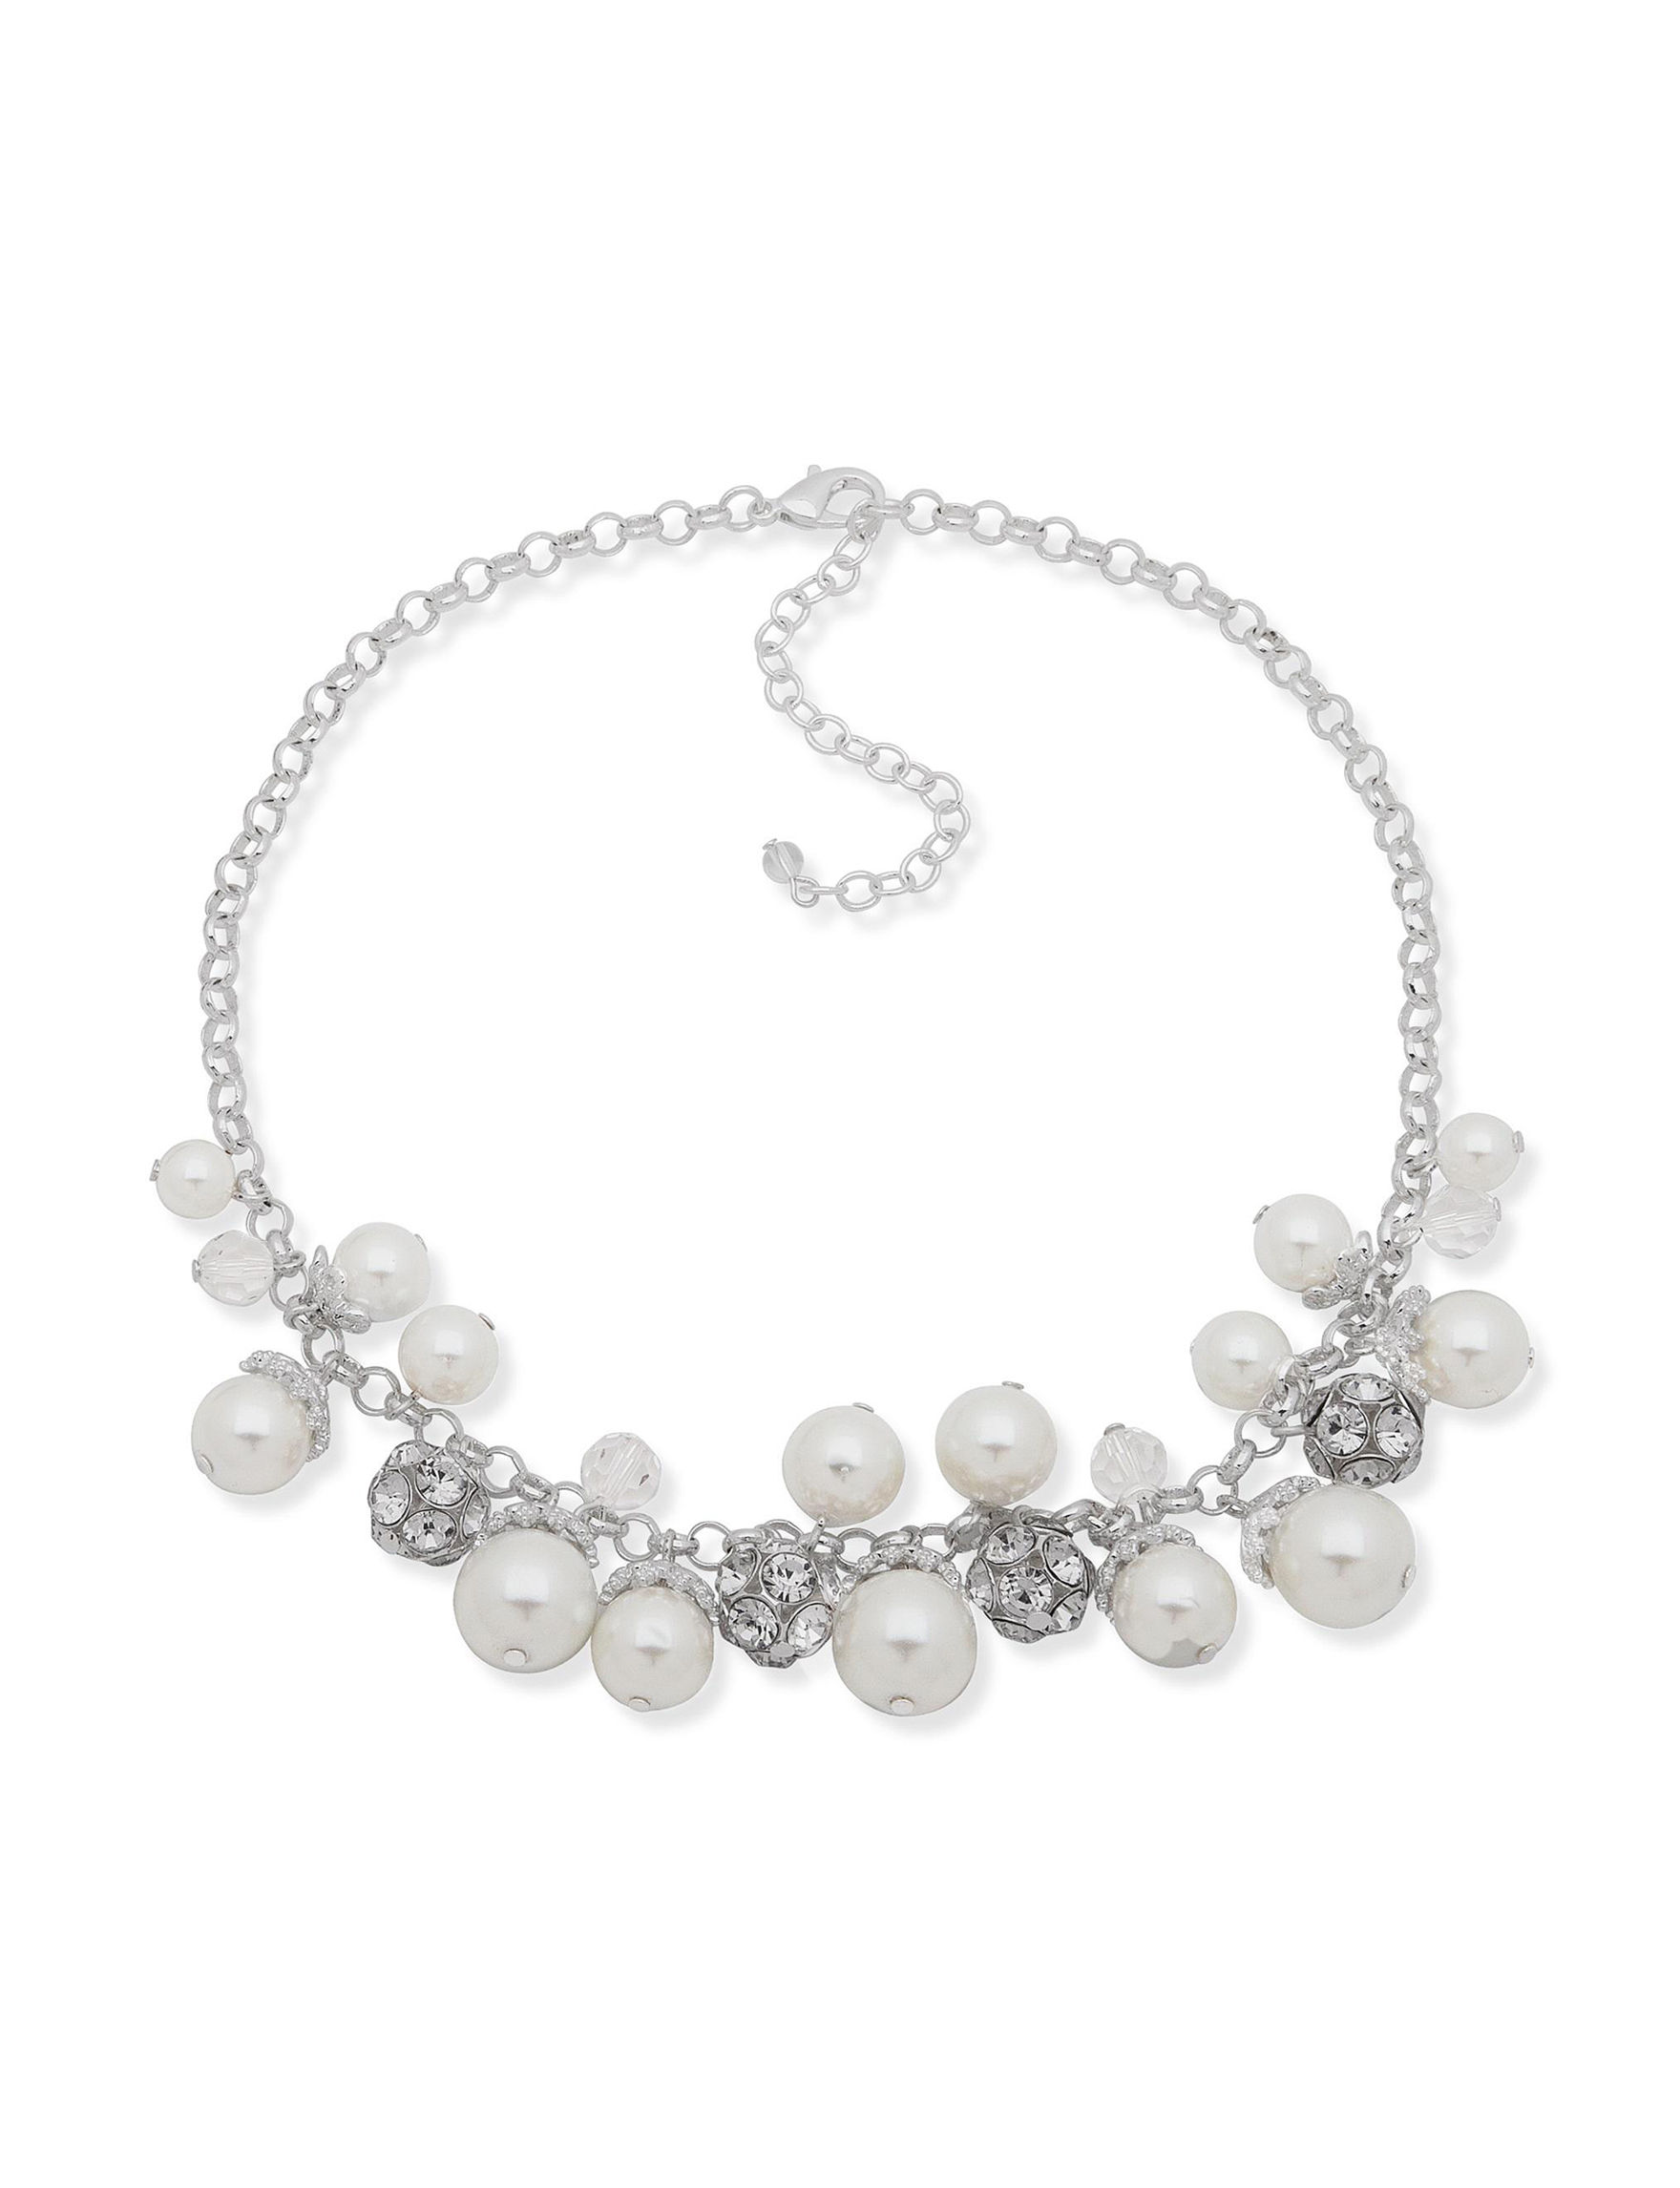 You're Invited Silver / White Necklaces & Pendants Fashion Jewelry